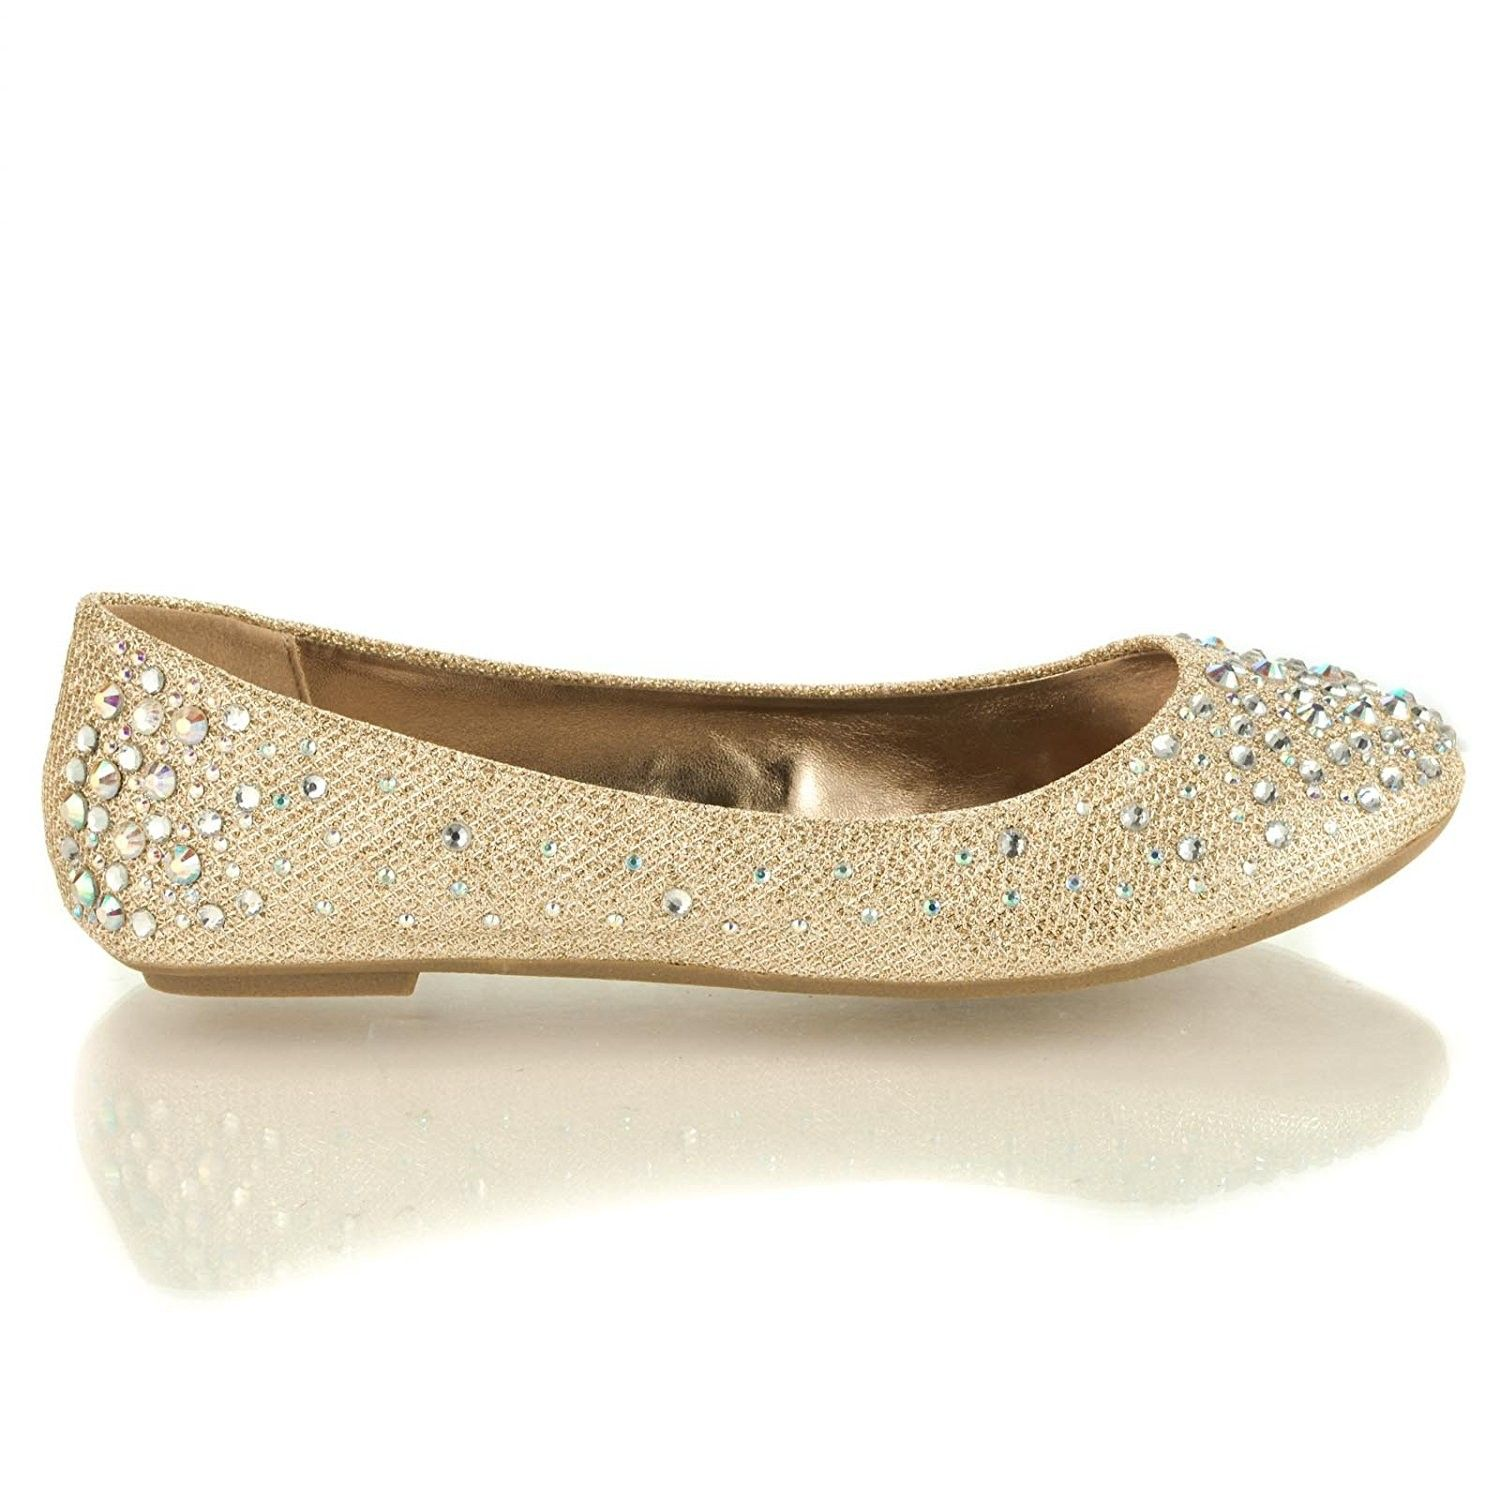 95018f794b53d4 Women s Round Toe Ballet Flats with Iridescent Rhinestone Studs on ...